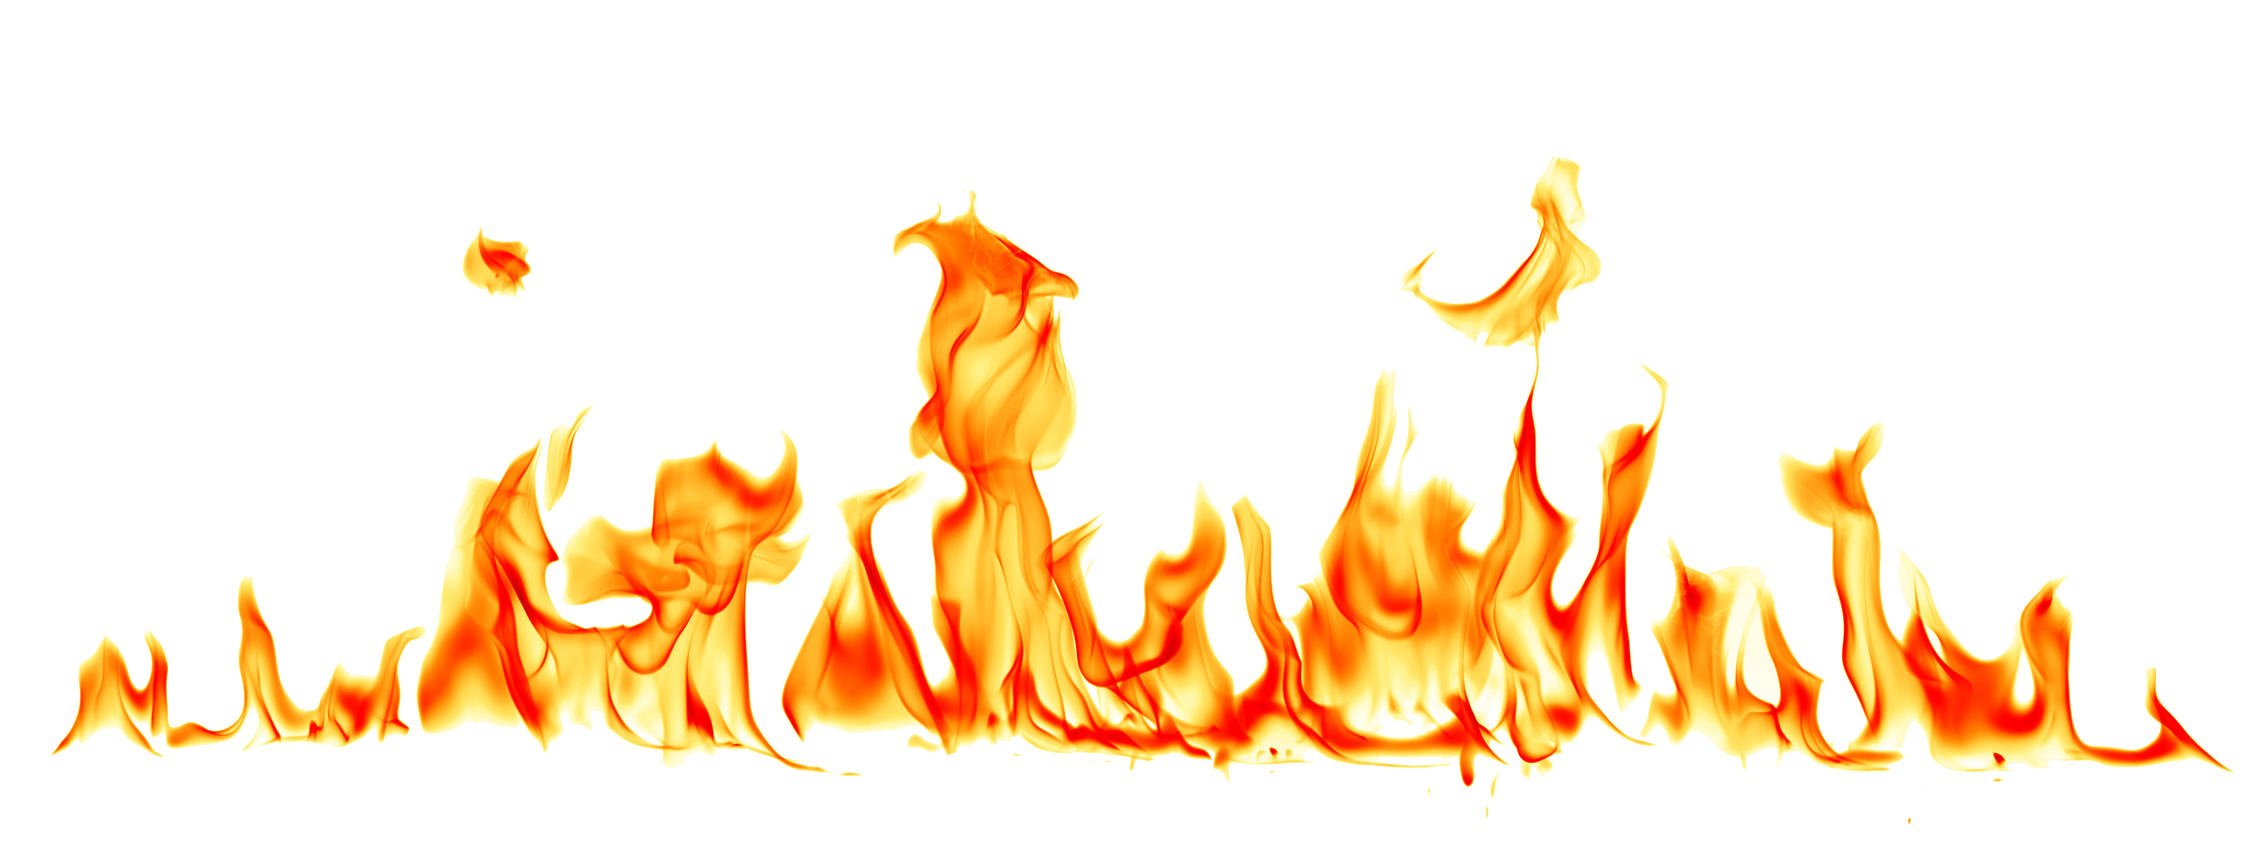 Fire Flames PNG Transparent image #44304